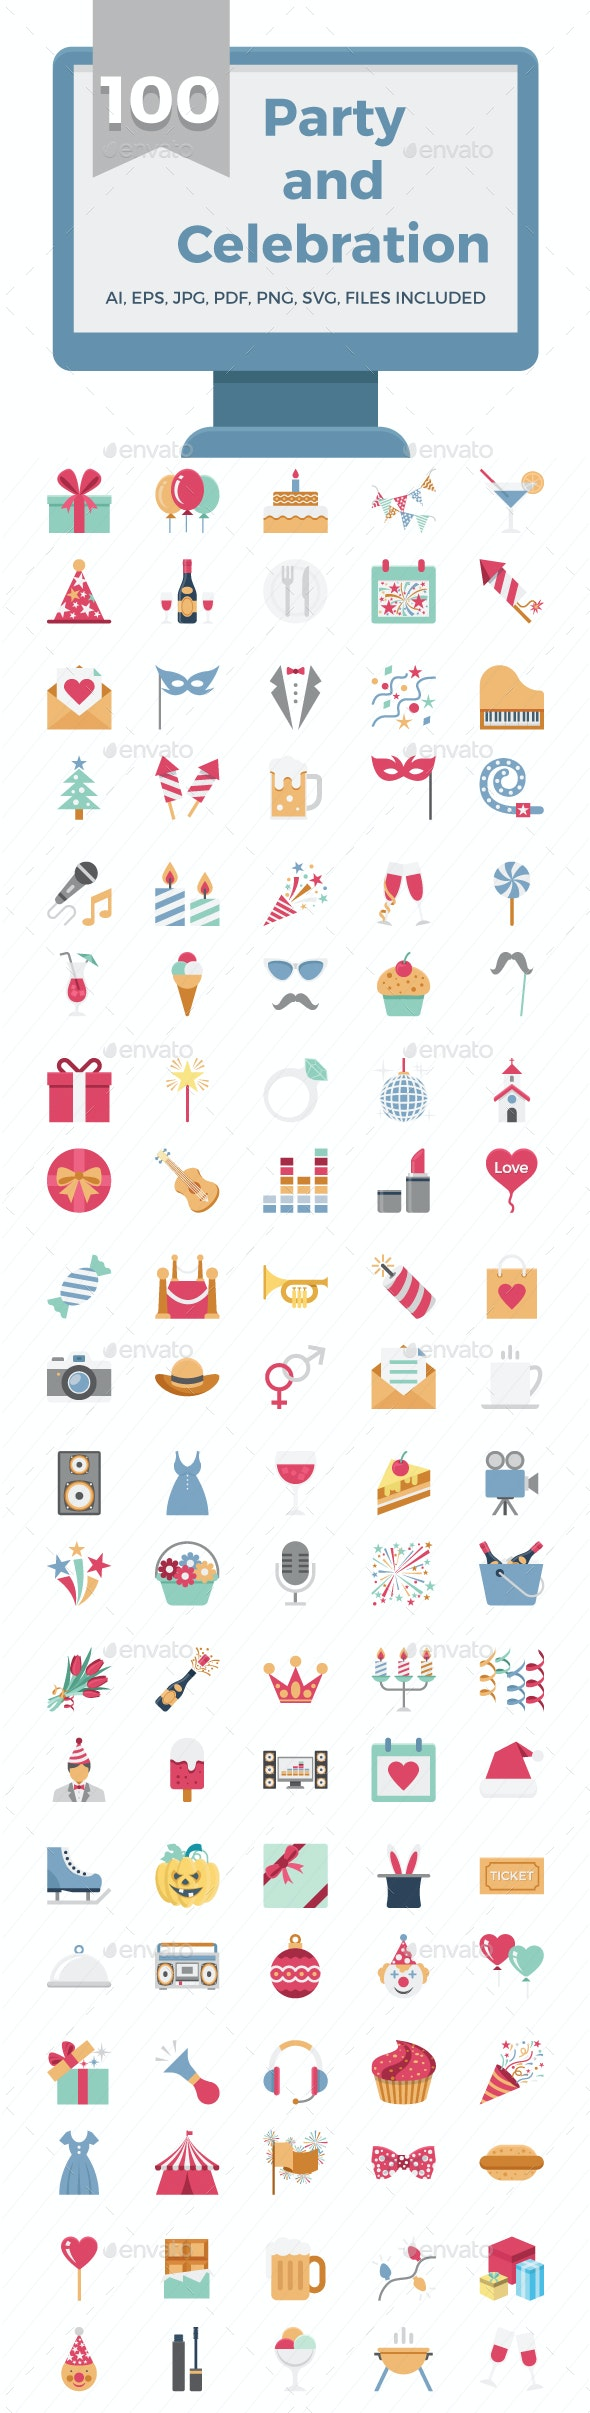 100 Party and Celebration Color Vector Icons Set - Icons